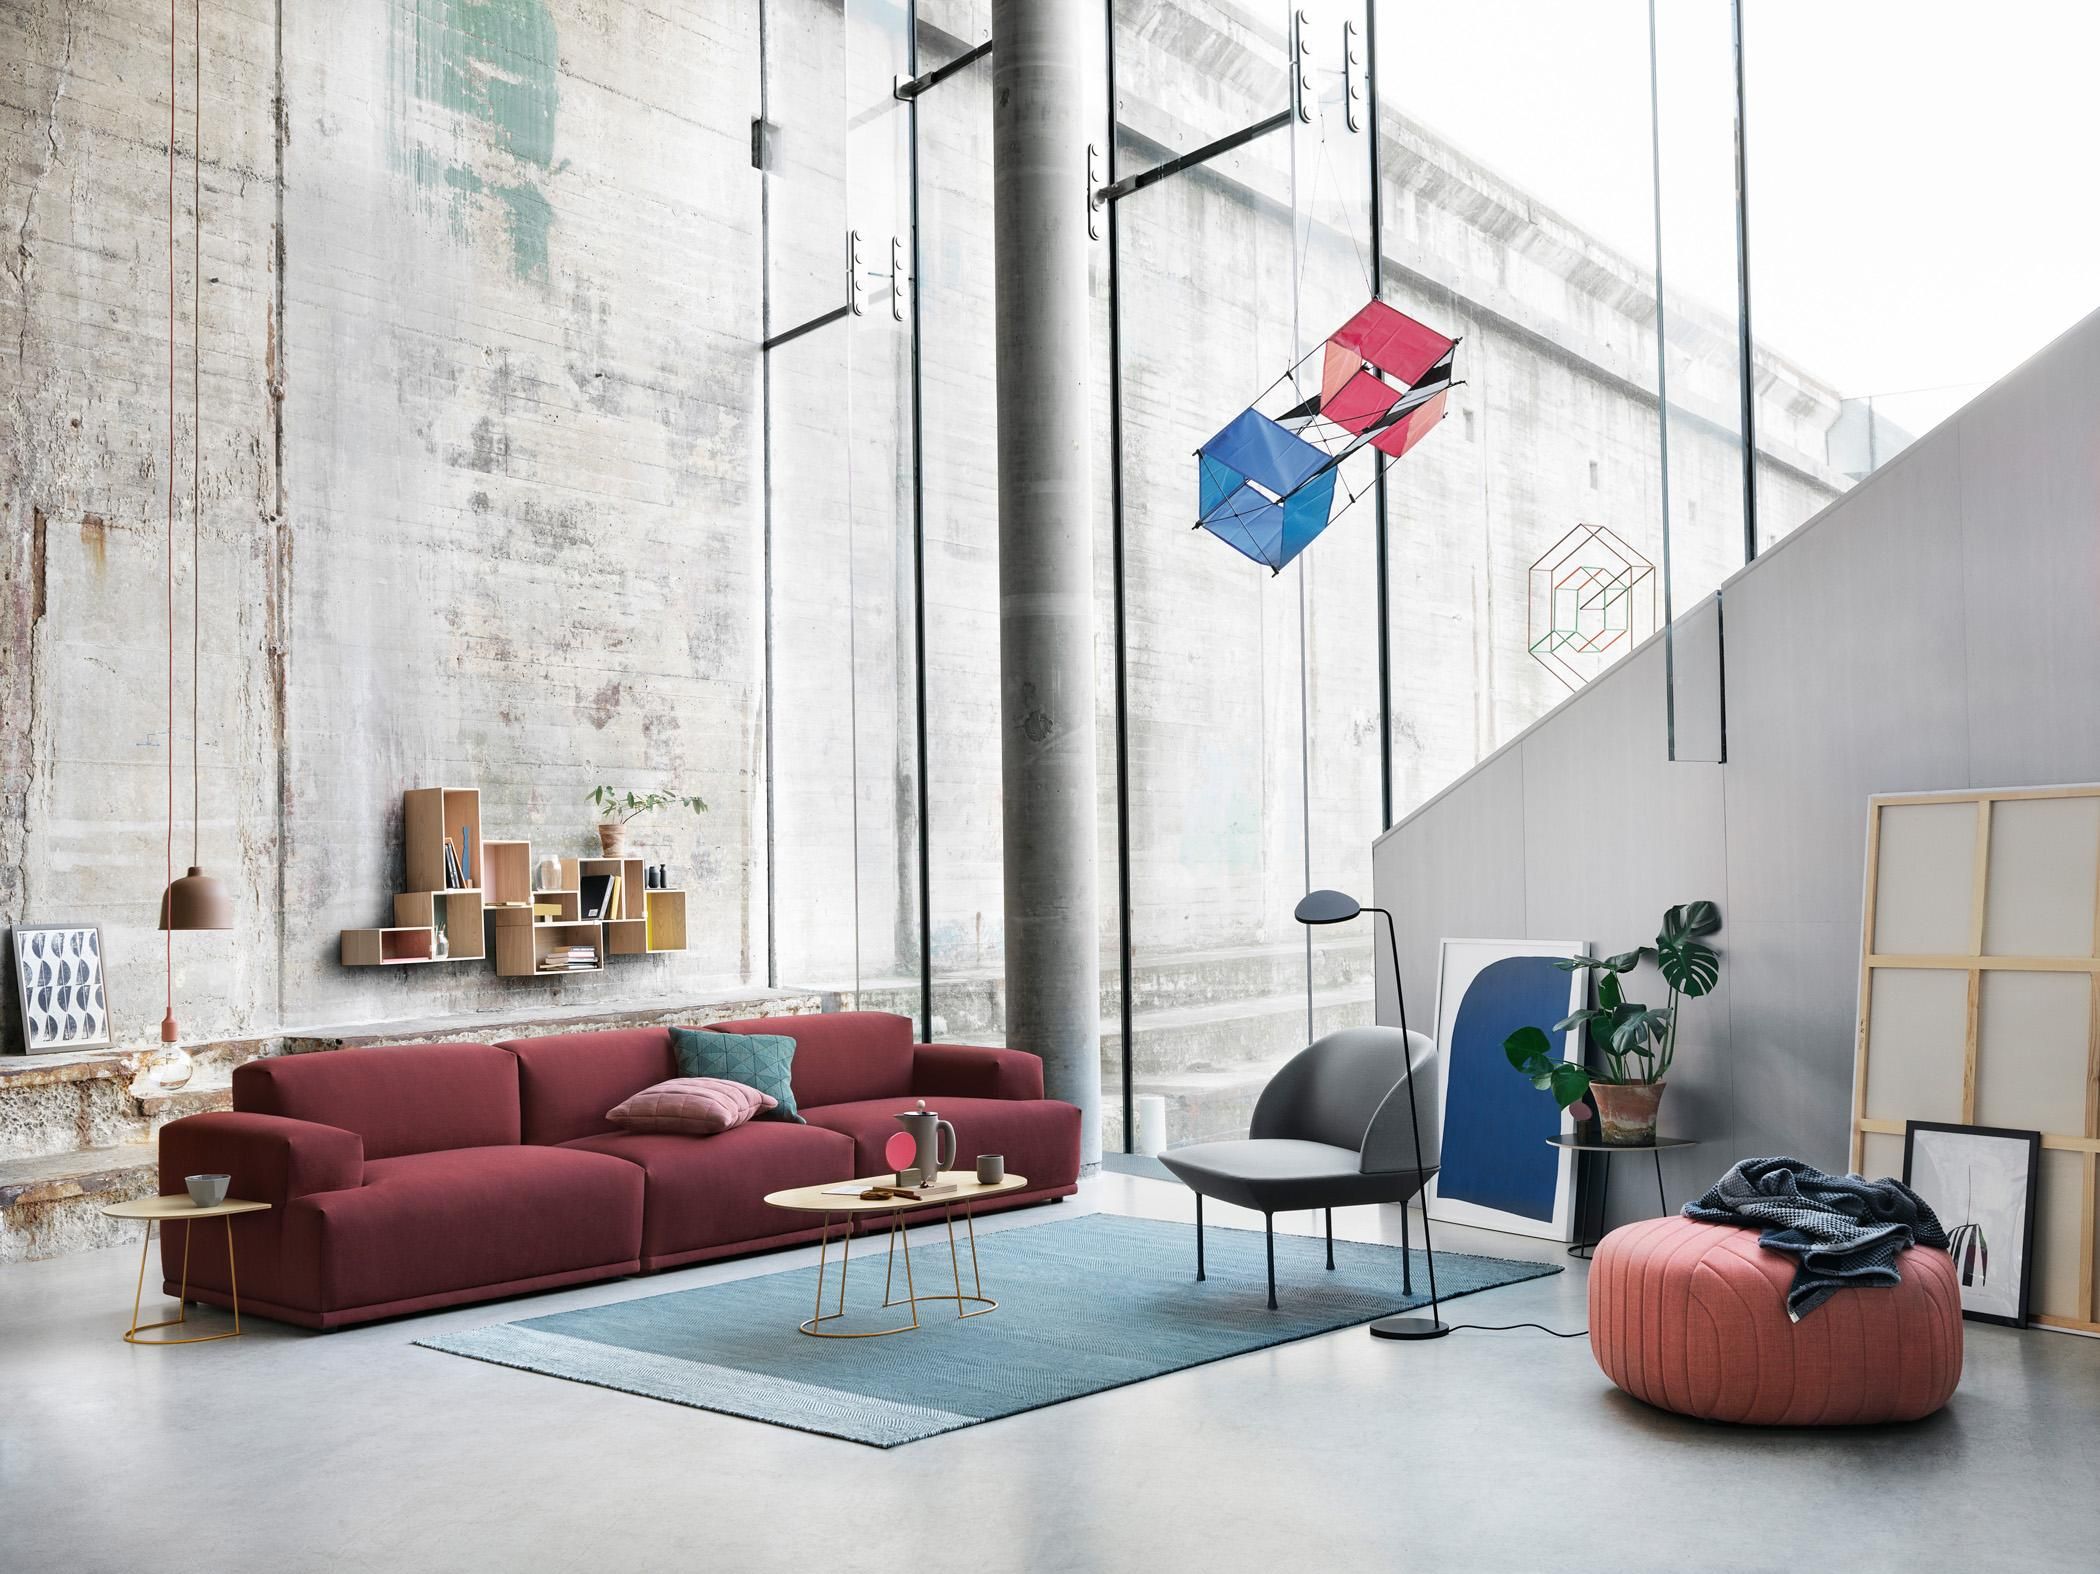 Farben Wohnzimmer Rotes Sofa Rotes Sofa Bilder Ideen Couch